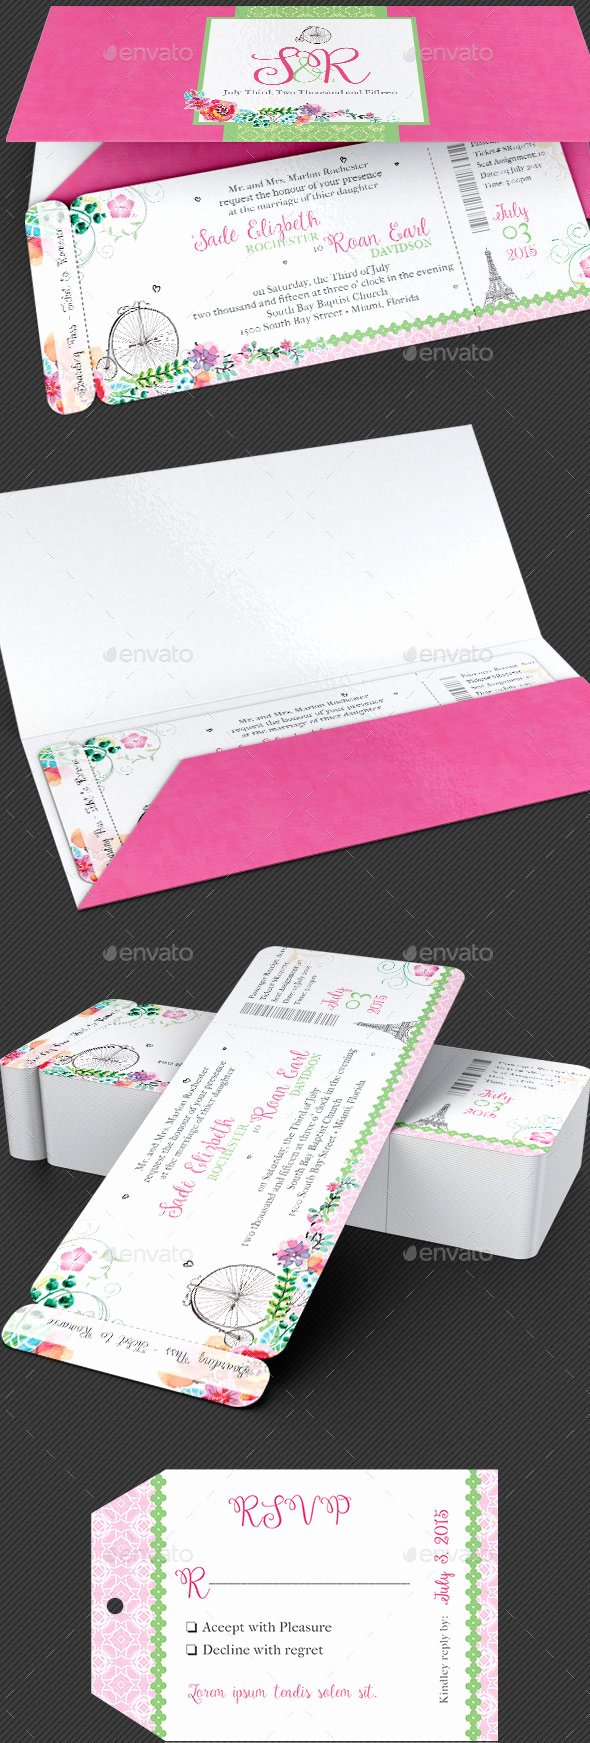 Boarding Pass Invitation Template Awesome 40 Best Wedding Invitation Psd Templates Designmaz